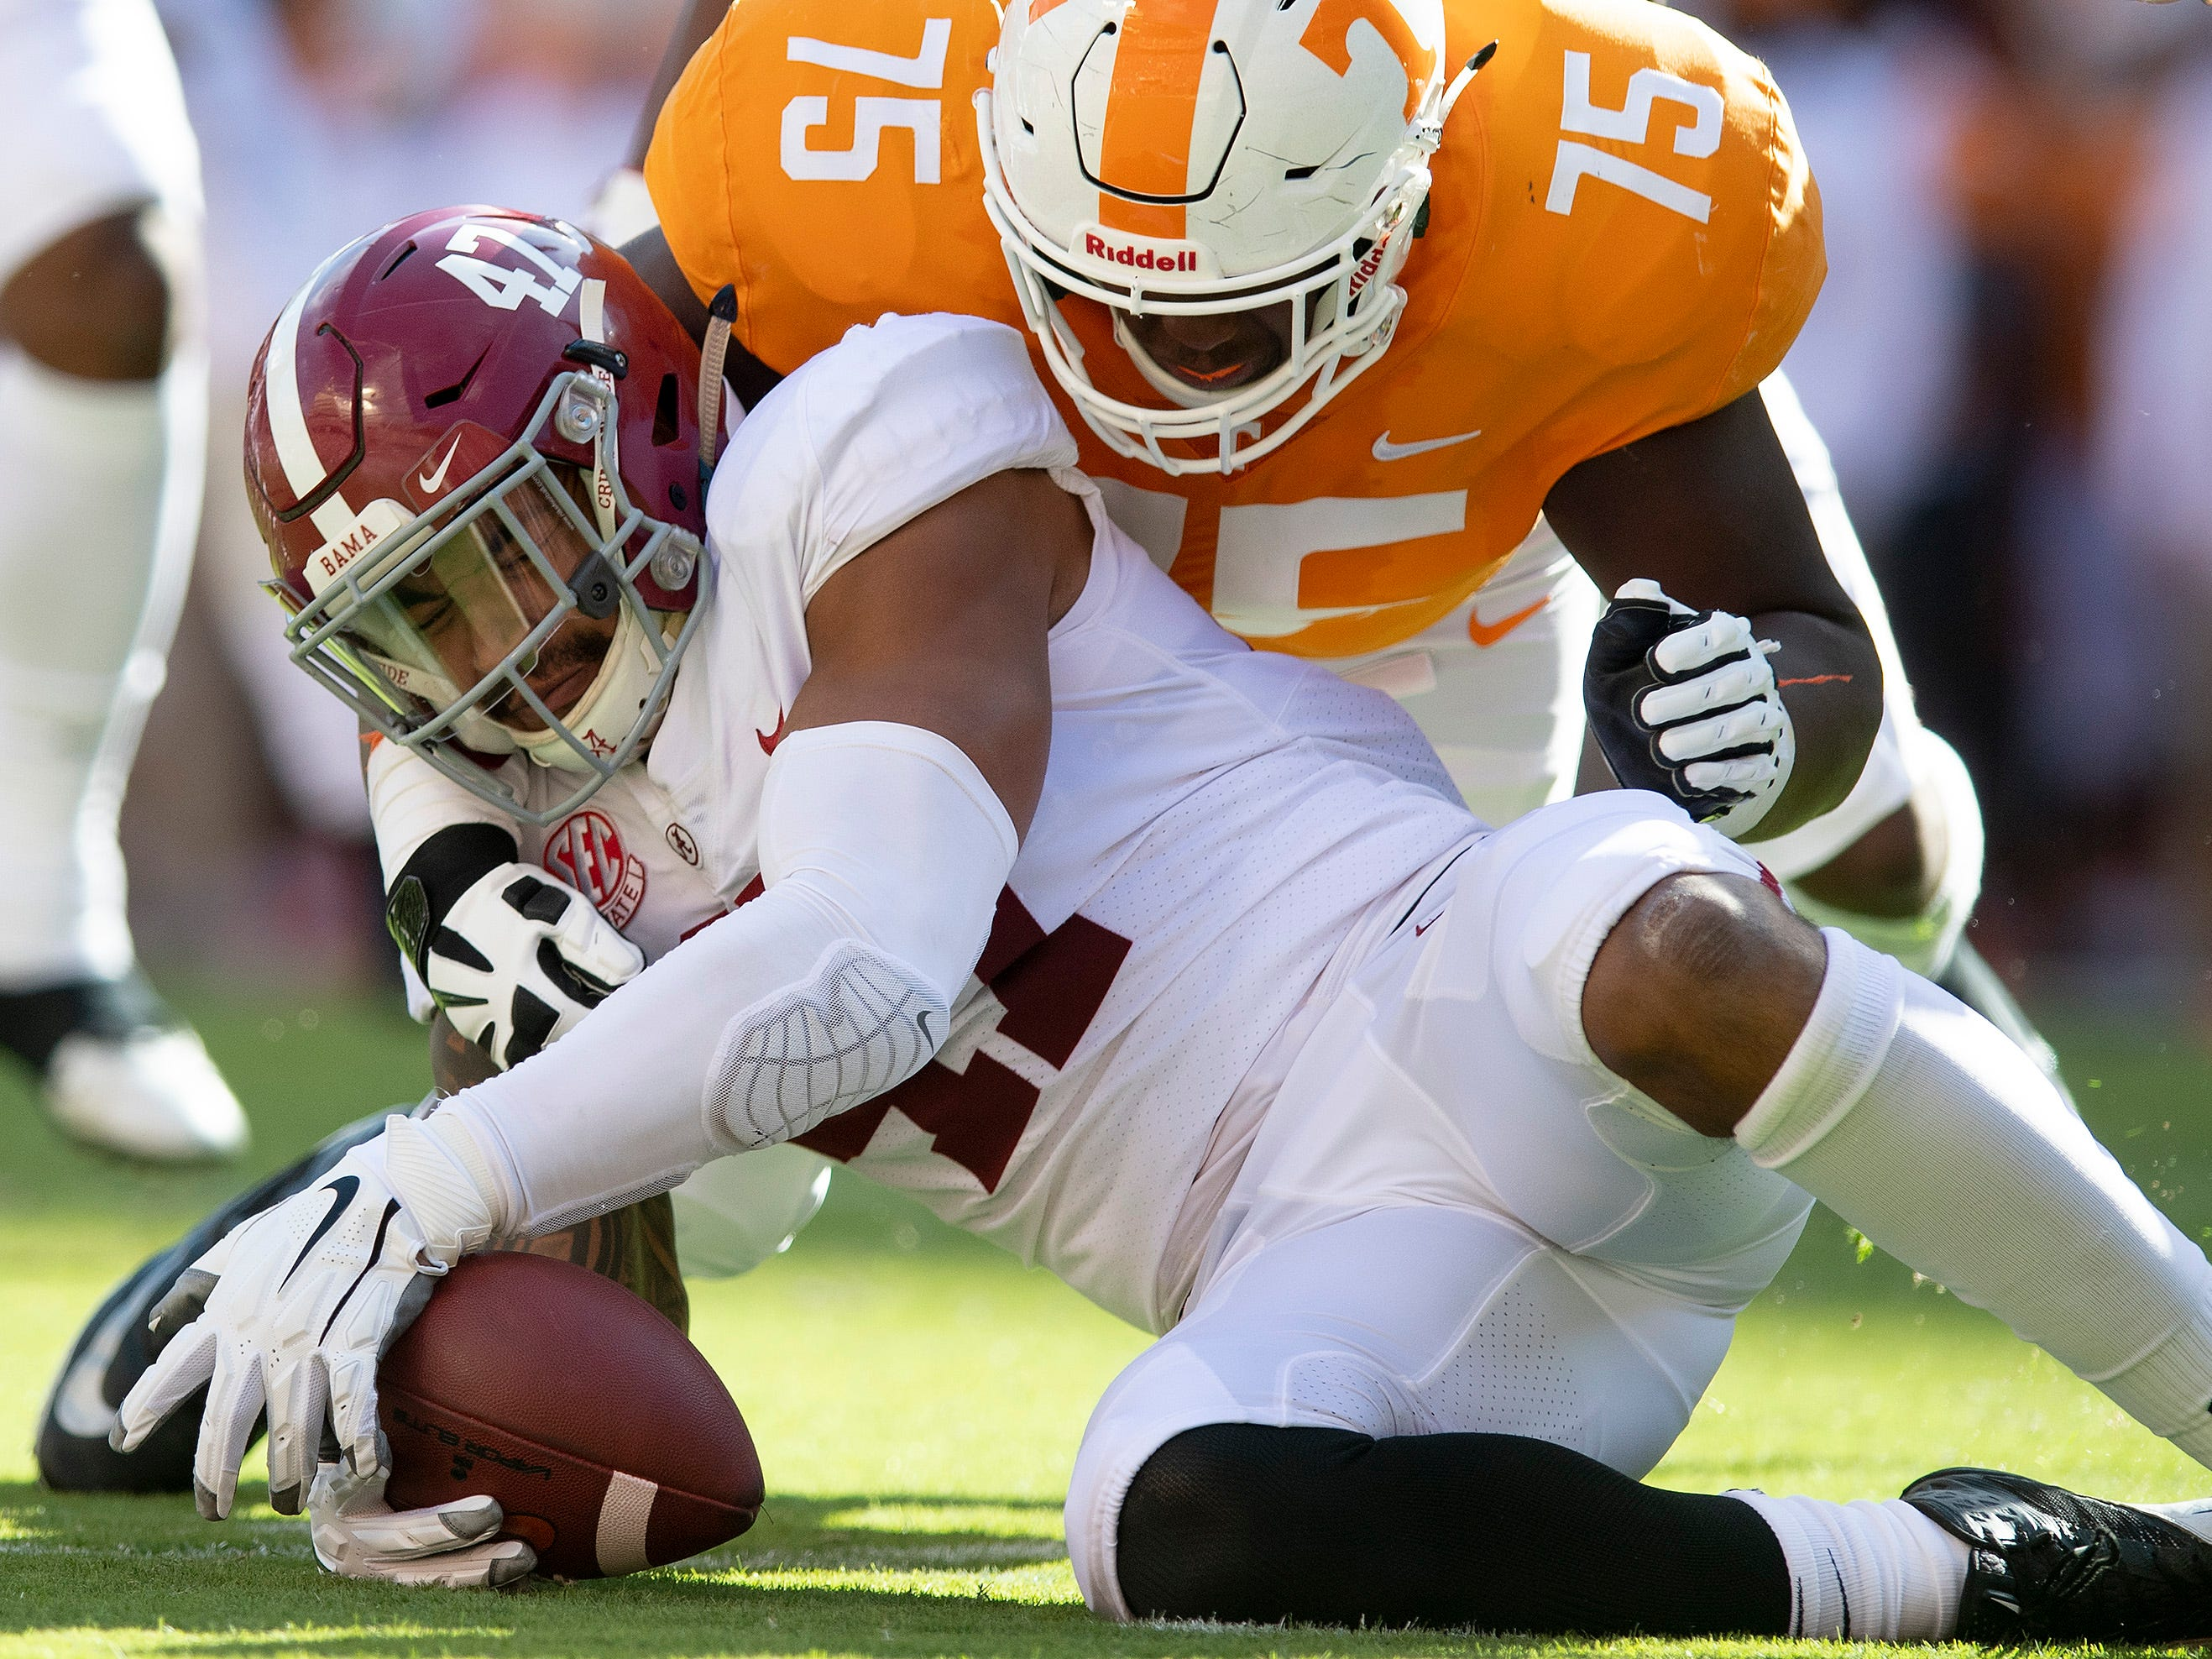 Alabama linebacker Christian Miller (47) rovers a Tennessee  fumble in first half action at Neyland Stadium in Knoxville, Tn., on Saturday October 20, 2018.